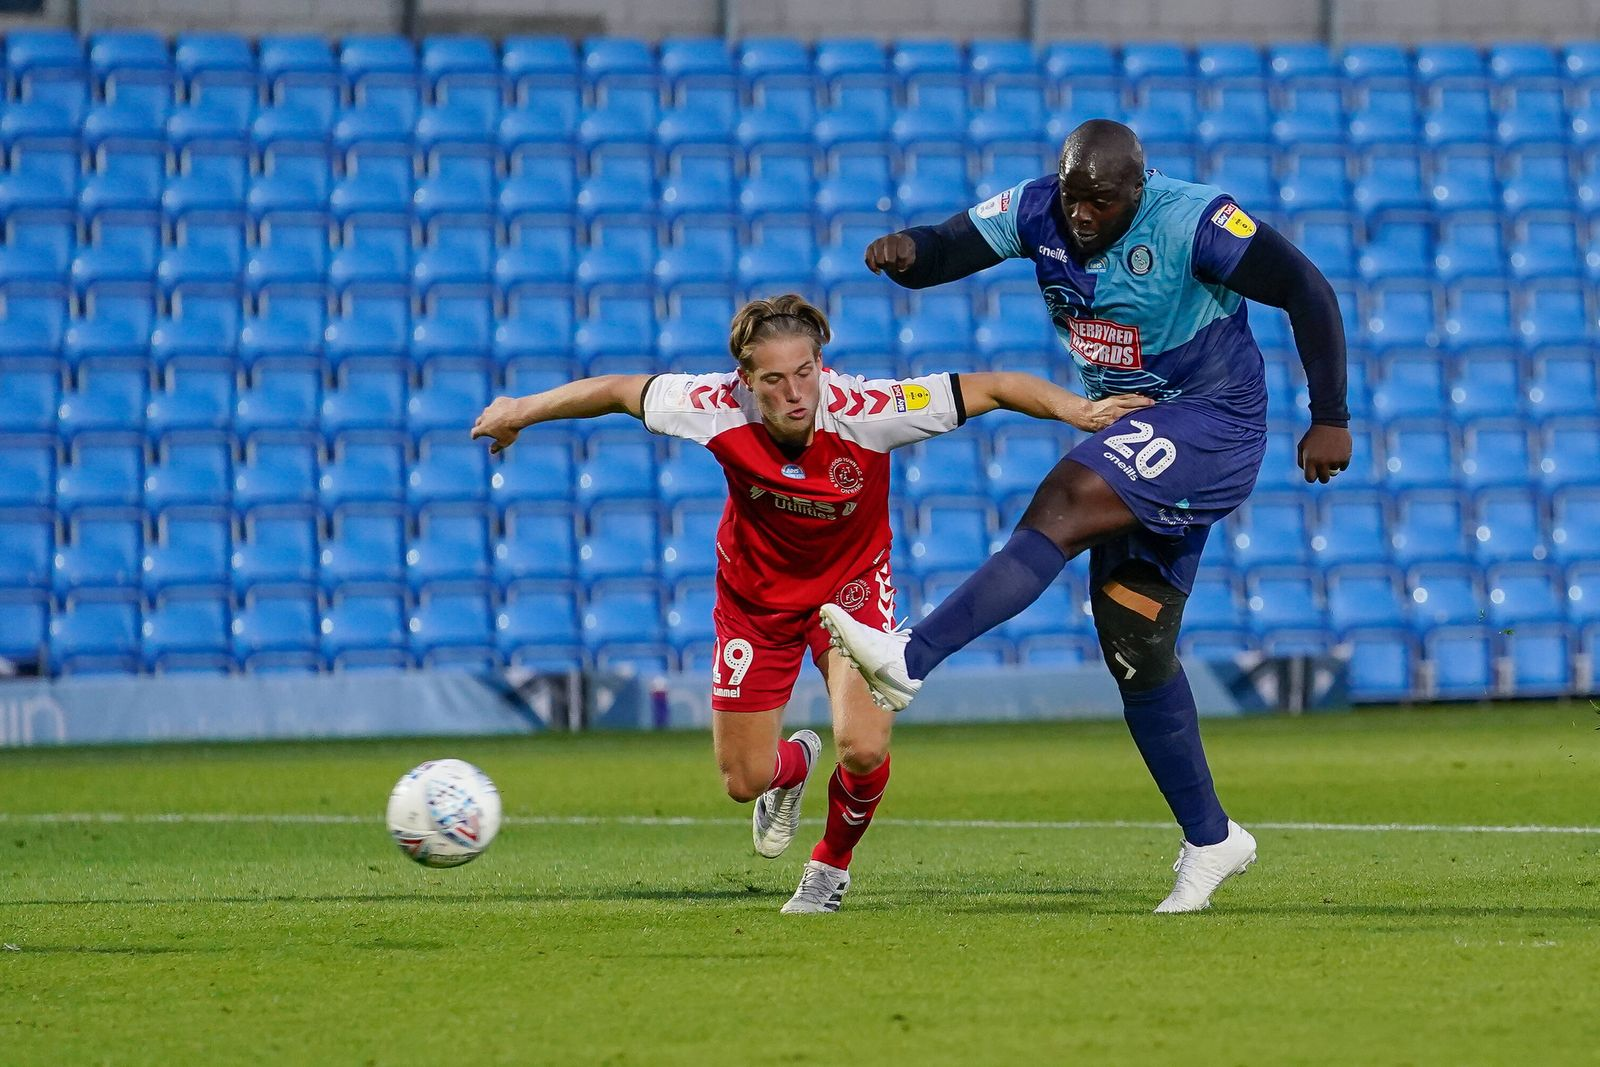 Sport Themen der Woche KW28 Adebayo Akinfenwa of Wycombe Wanderers (right) shoots during the Sky Bet League 1 play-off s